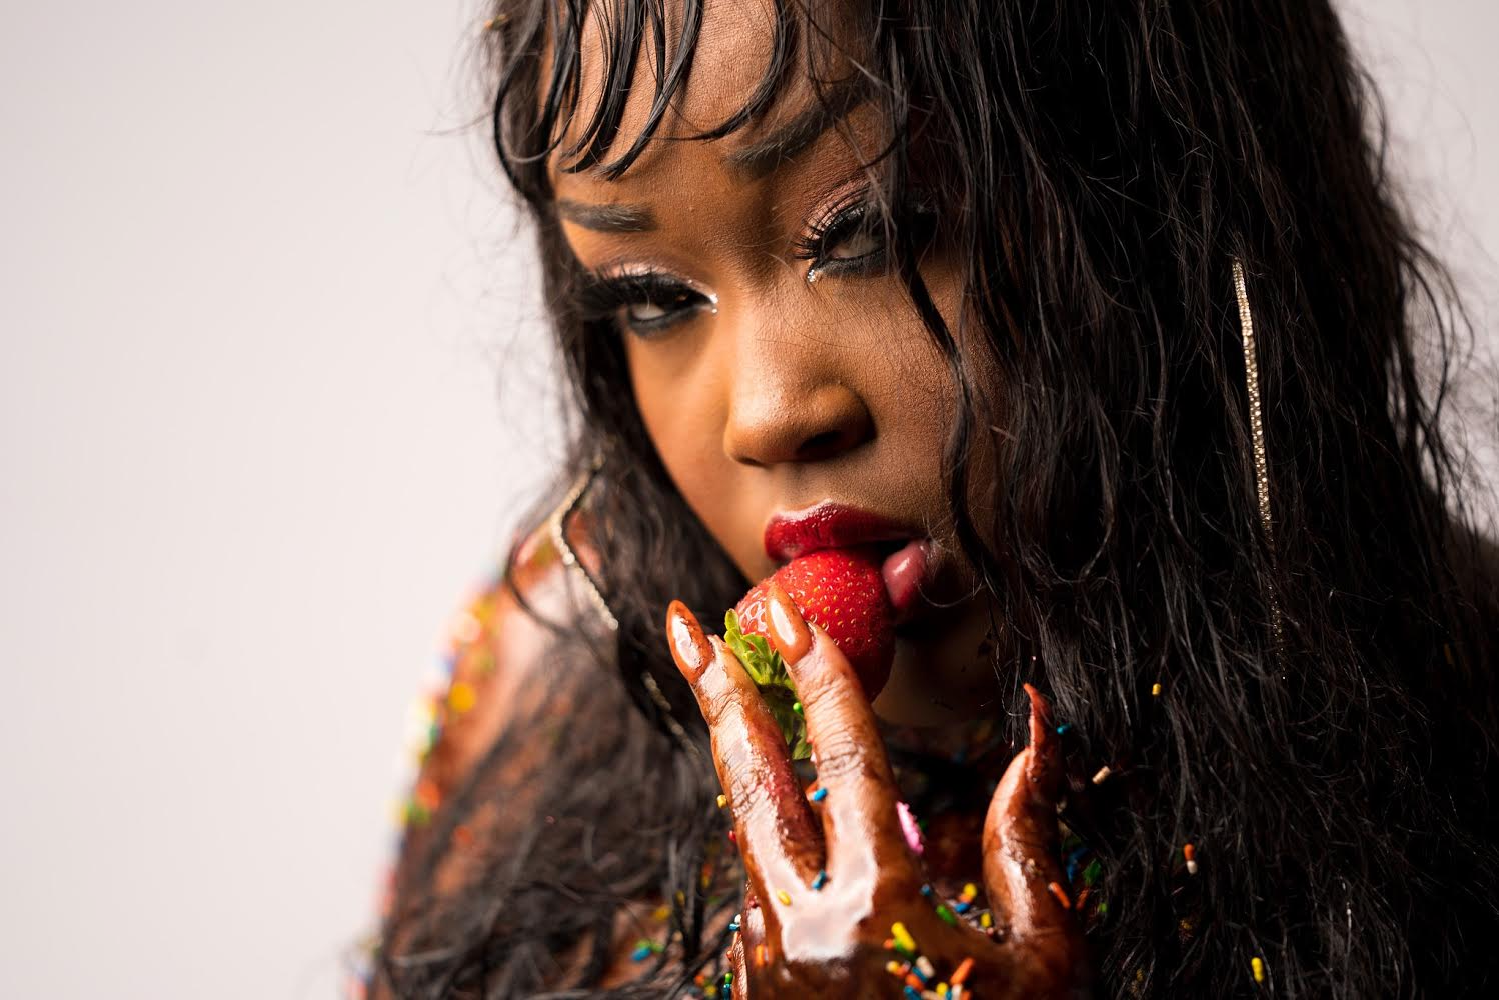 cupcaKke - Bold and outspoken Chicago rapper CupcakKe achieved viral success and critical acclaim with her brazen, unapologetically explicit songs and videos that channeled the likes of Lil Kim, Foxy Brown, and Gangsta Boo. She debuted in 2016 with a pair of raunchy EPs and a full-length, Audacious, following with the critically-acclaimed Queen Elizabitch (2017) and Ephorize (2018).